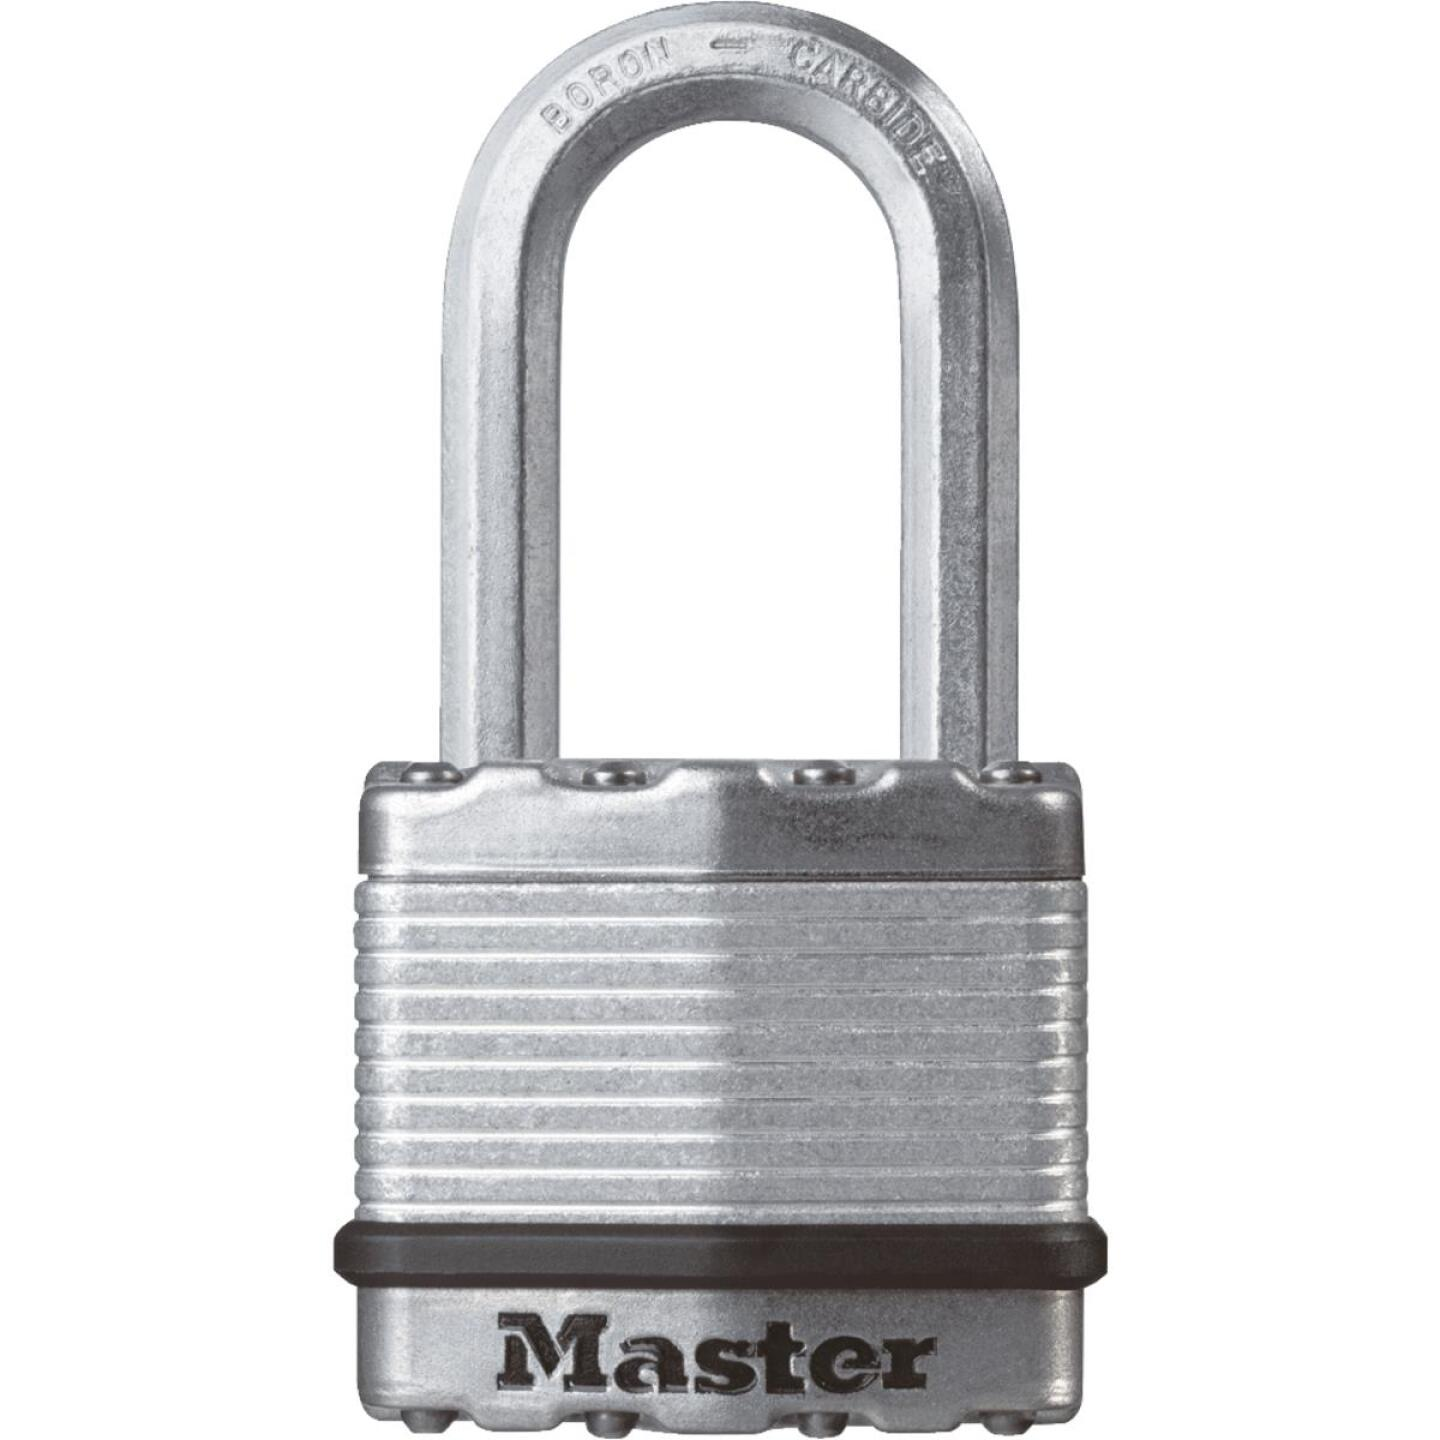 Master Lock Magnum 1-3/4 In. W. Dual-Armor Keyed Different Padlock with 1-1/2 In. L. Shackle Image 1